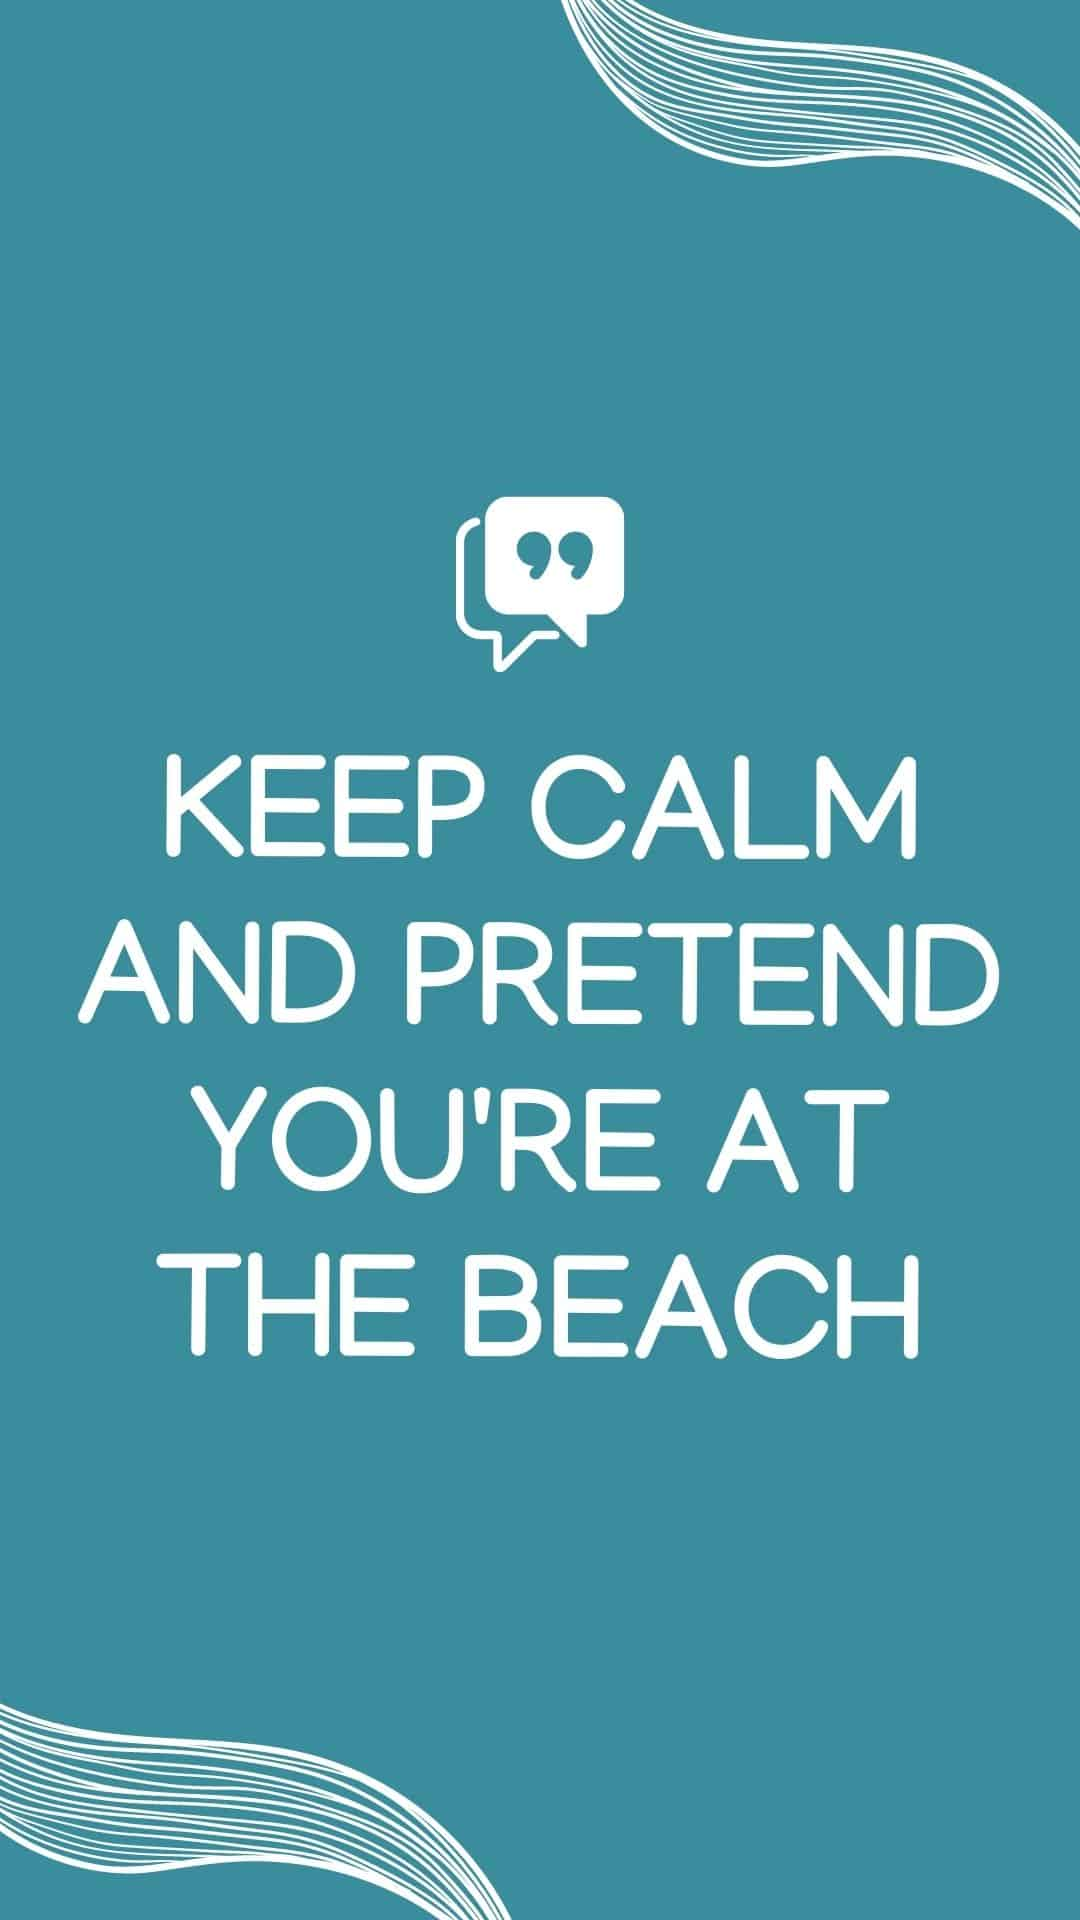 Keep calm and pretend you're at the beach!  Collection of beach life quotes